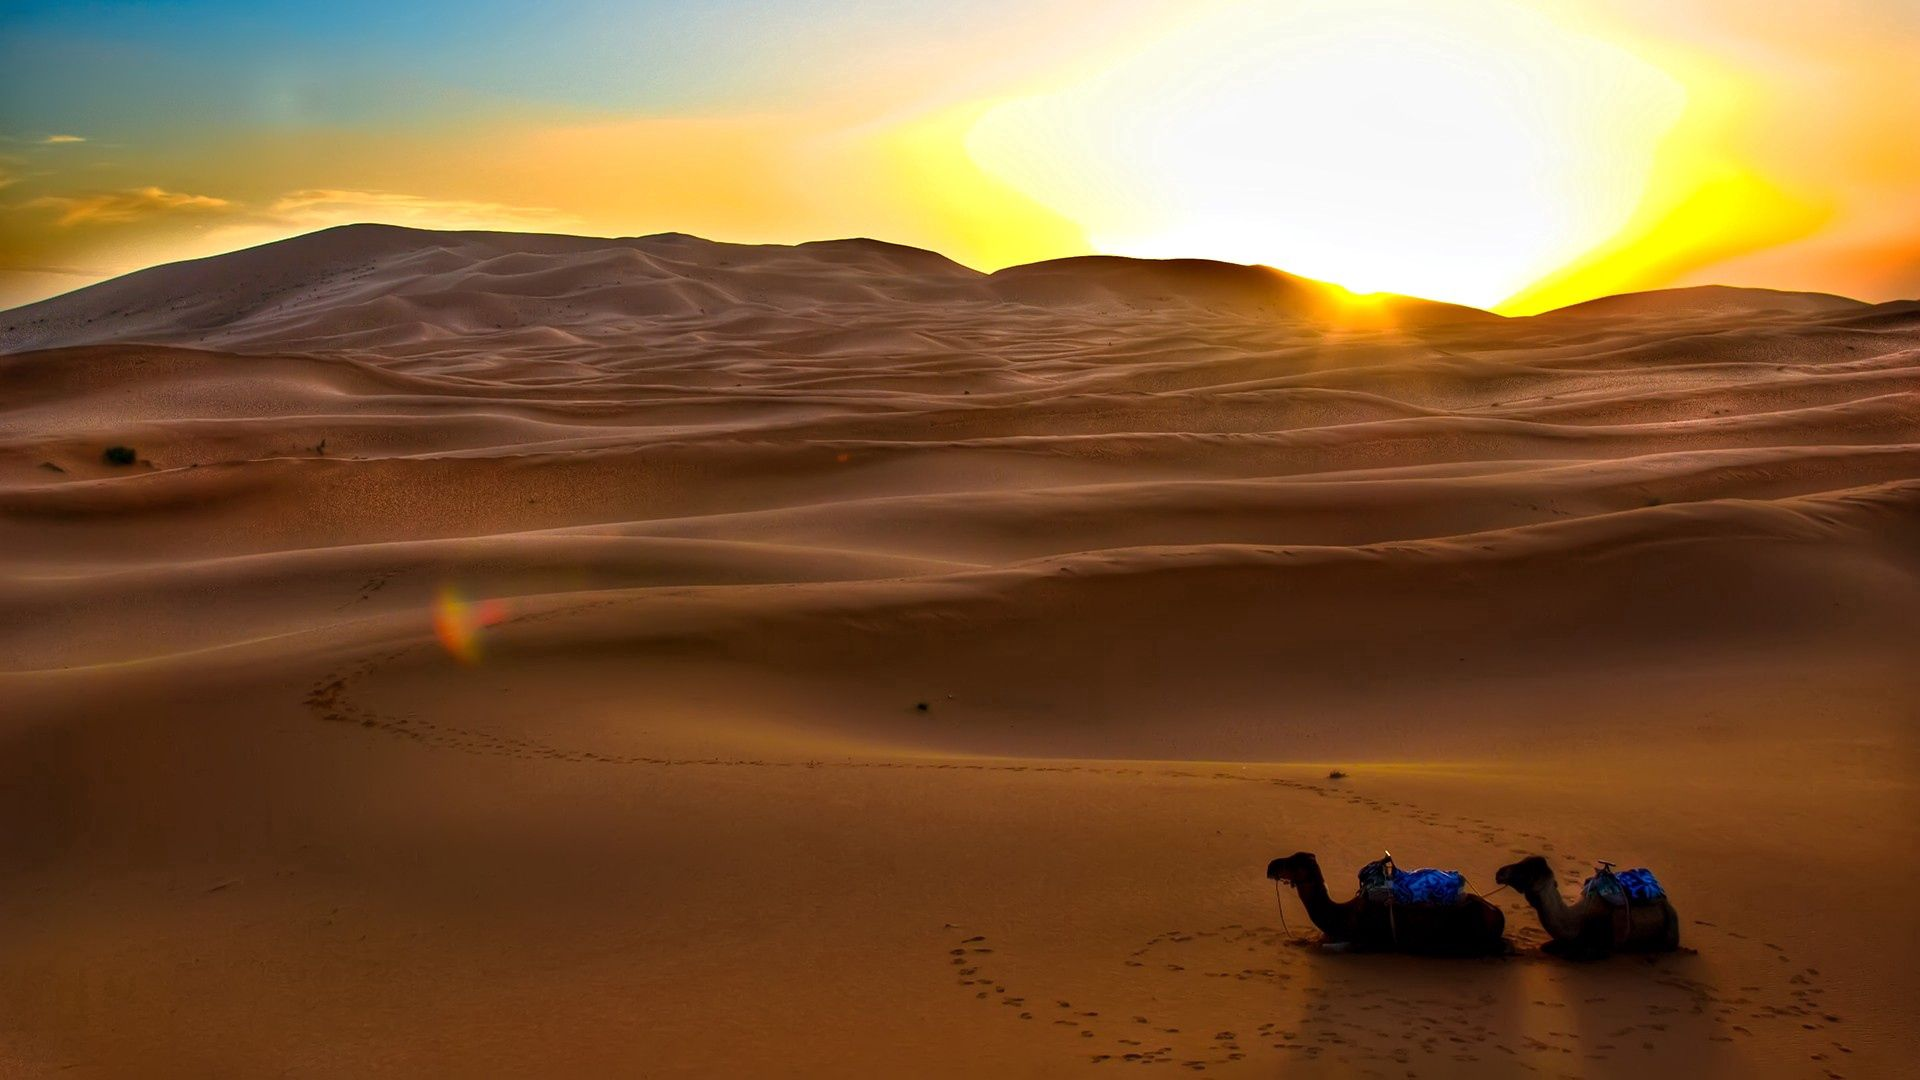 145014 download wallpaper Nature, Sand, Sunset, Evening, Traces, Desert, Sun, Camels screensavers and pictures for free